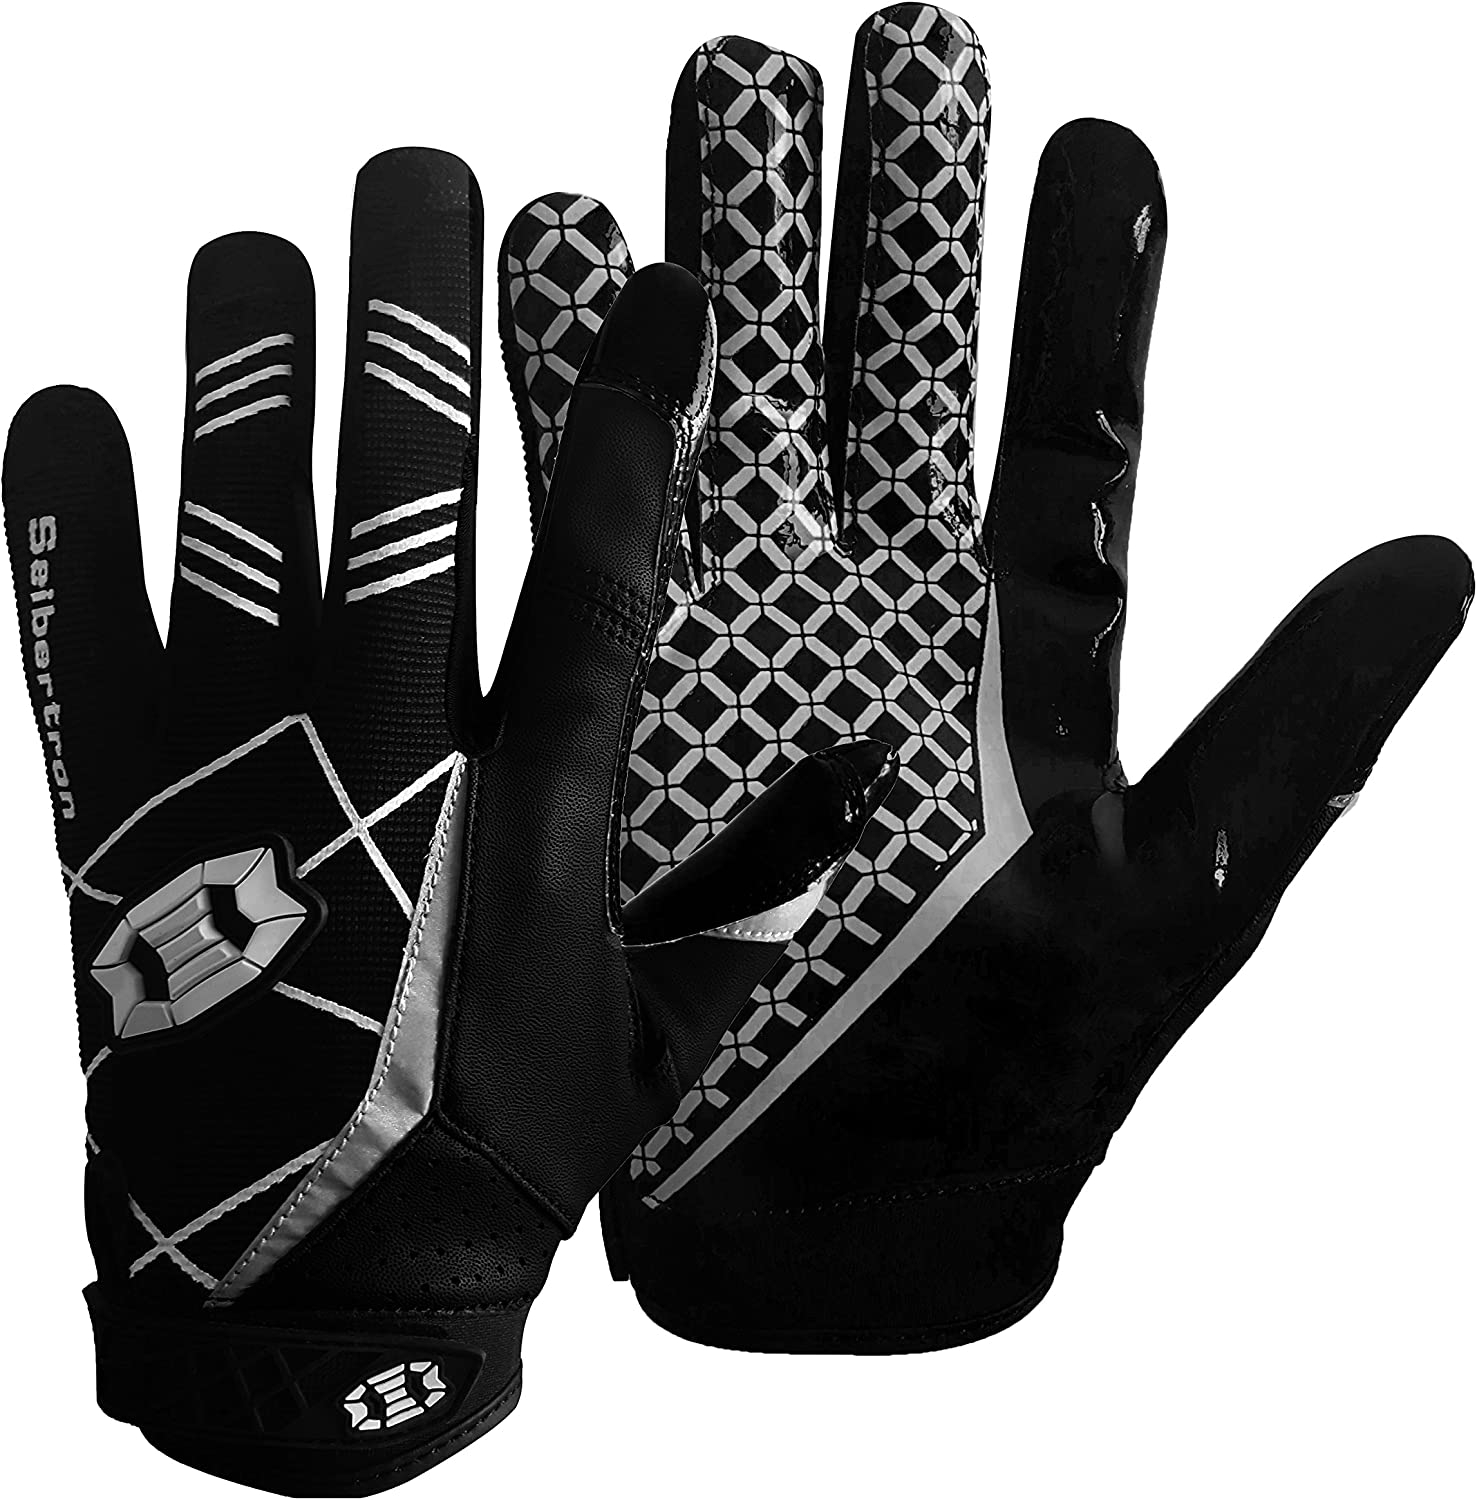 Seibertron Pro 3.0 Elite Ultra-Stick Sports Receiver Glove Football Gloves Youth and Adult : Sports & Outdoors